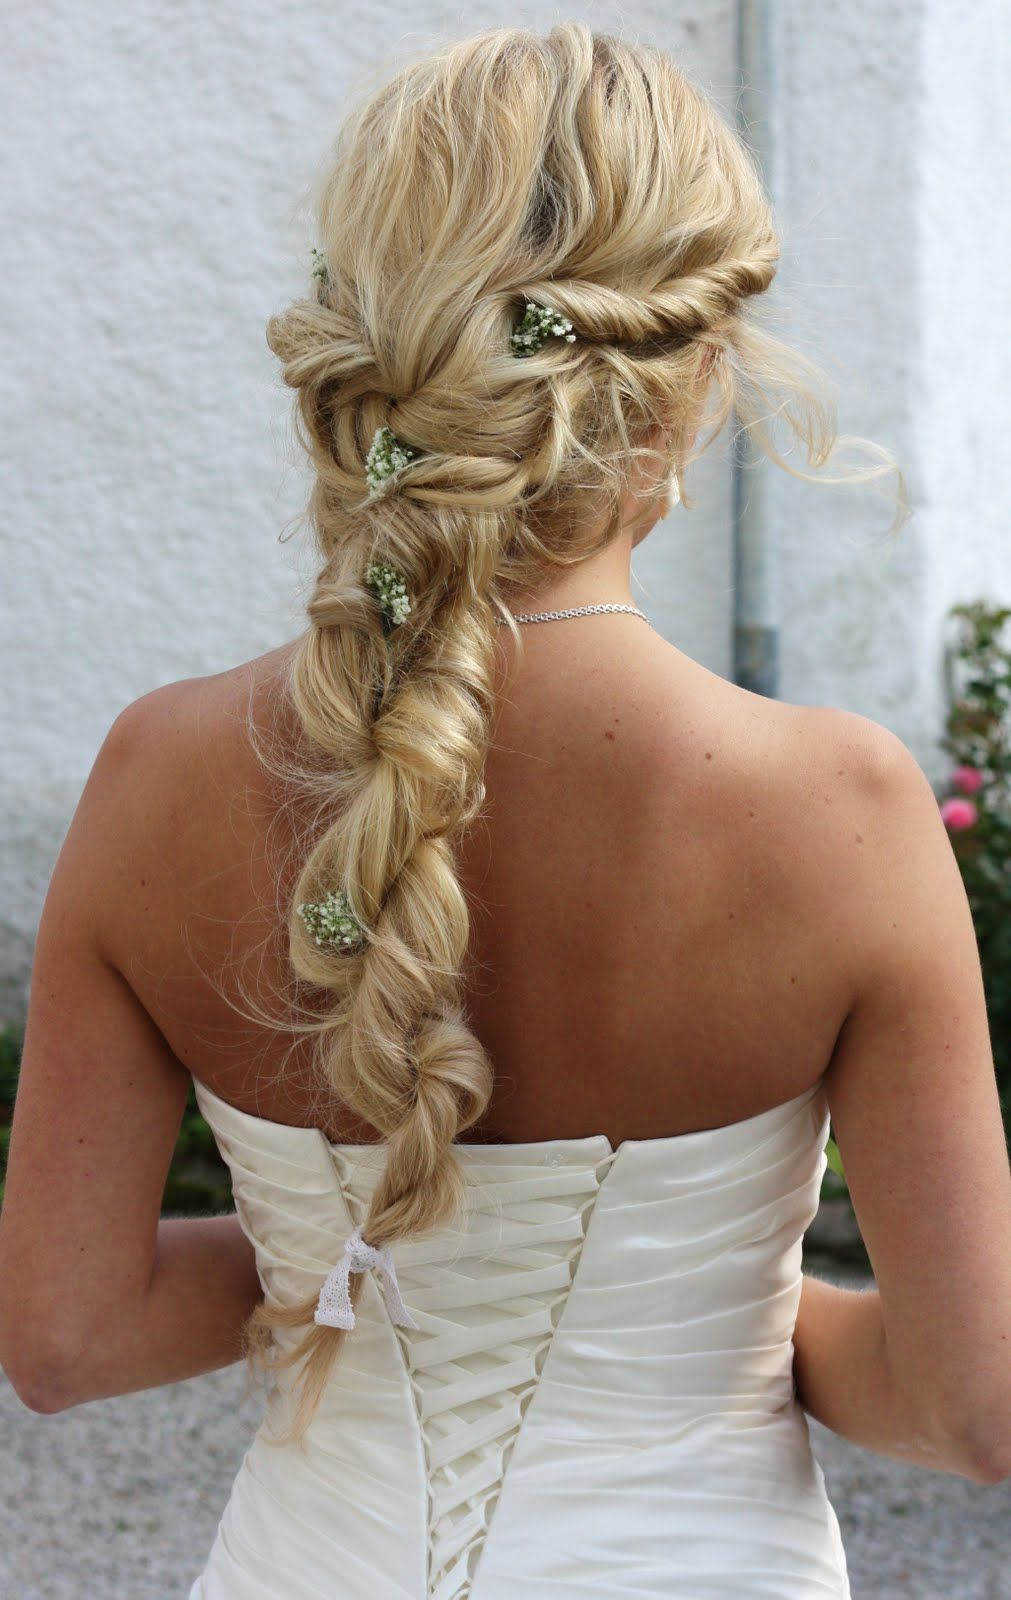 Wedding hair hair pinterest wedding wedding and wedding hair